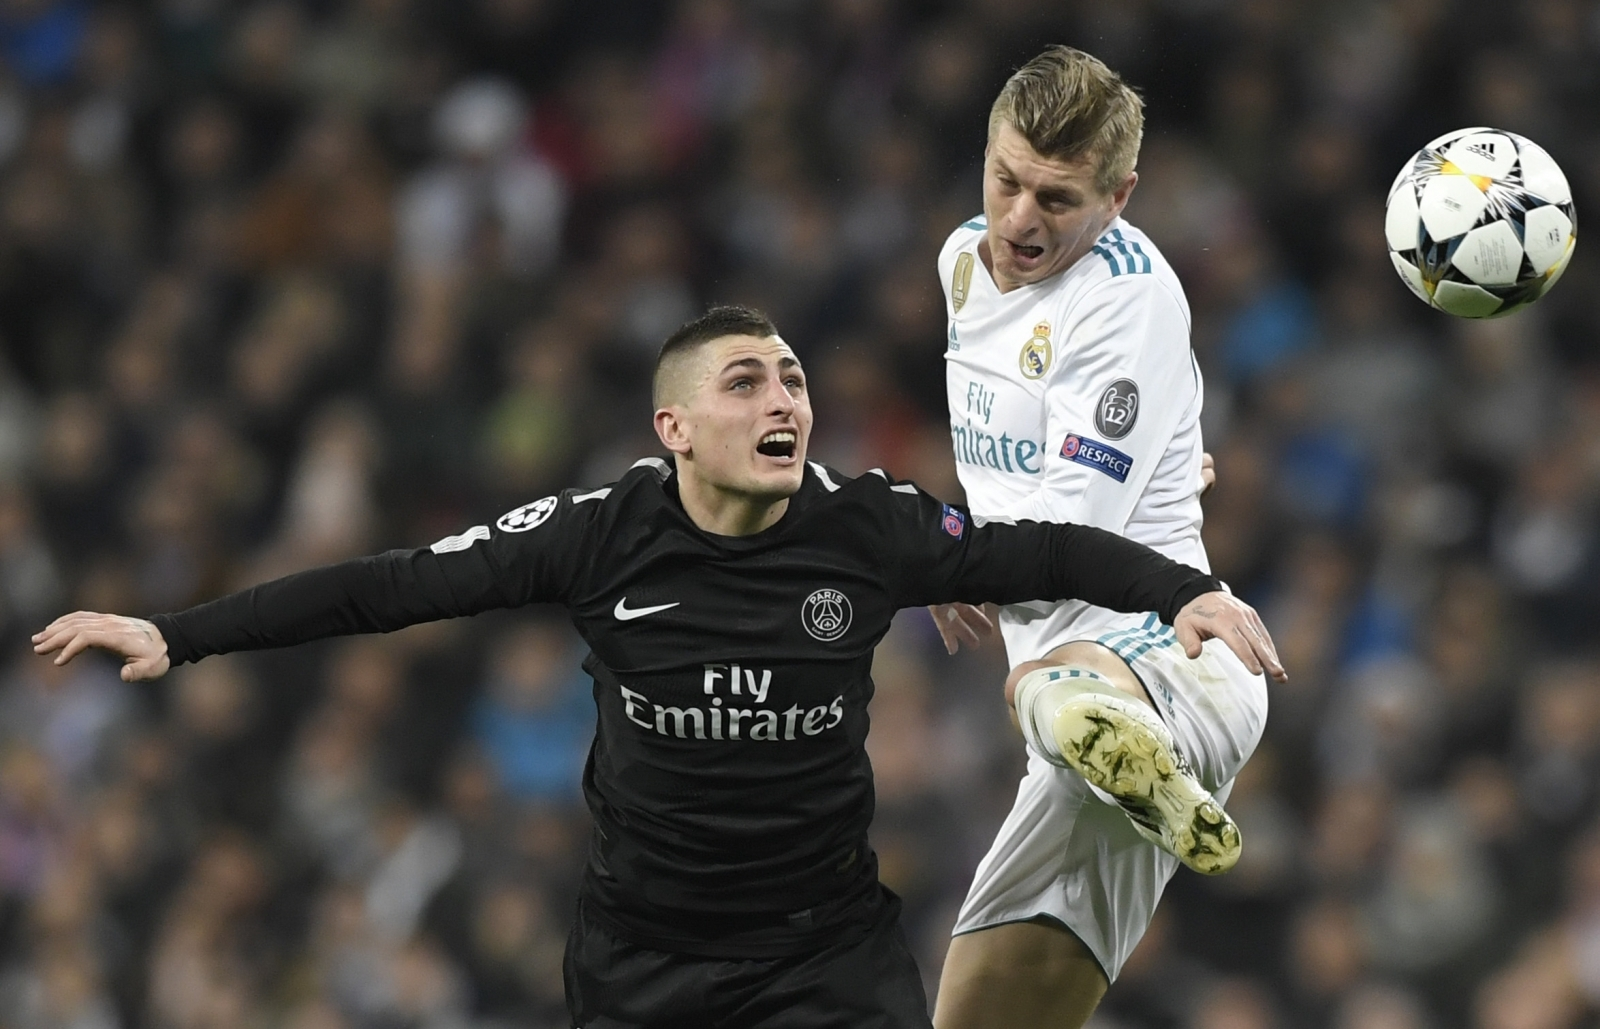 Real Madrid Dealt Huge Blow as Toni Kroos Suffers Knee Injury